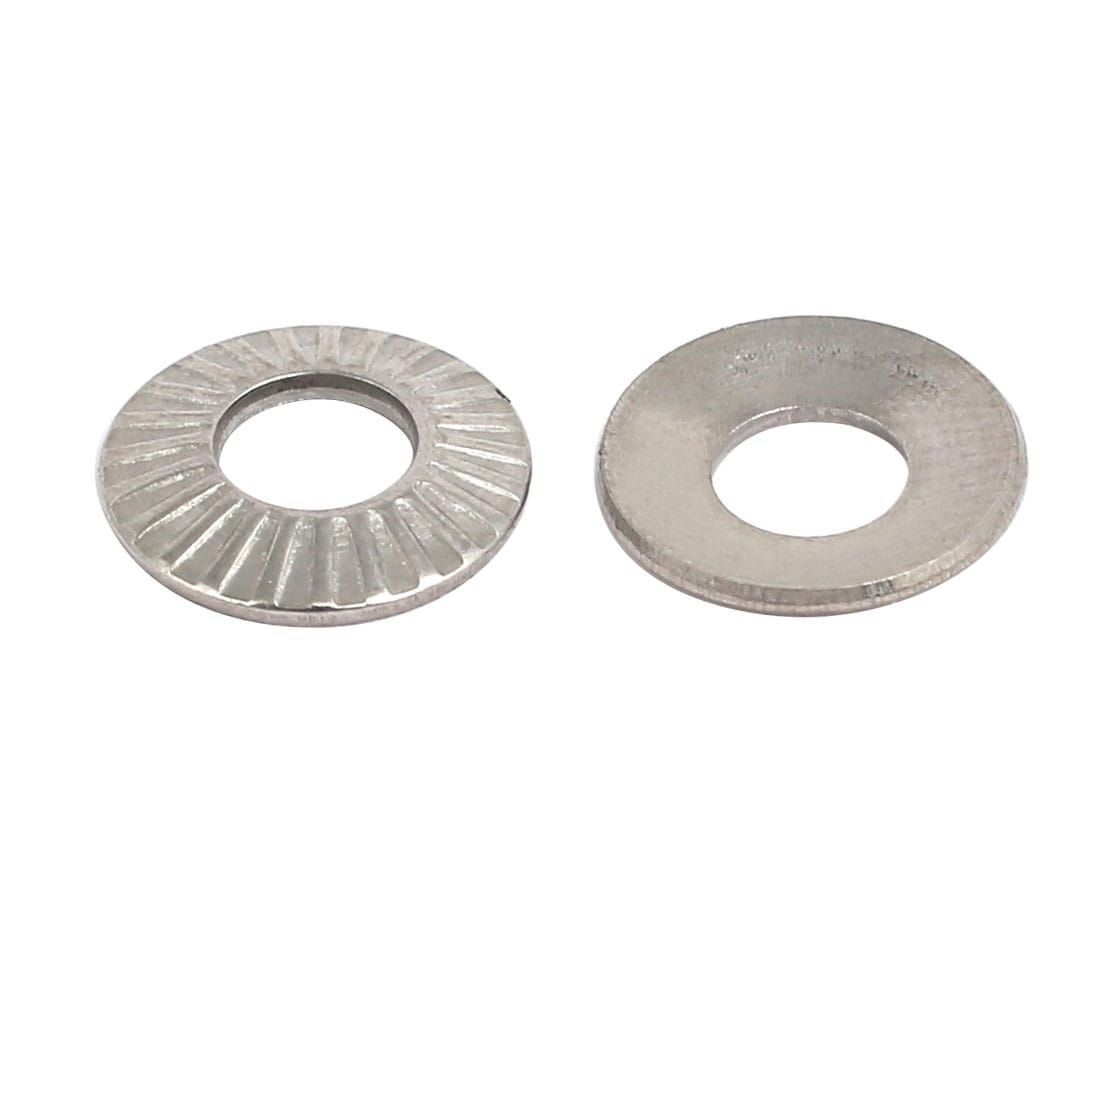 uxcell M8 304 Stainless Steel Locking Washer Silver Tone 20pcs